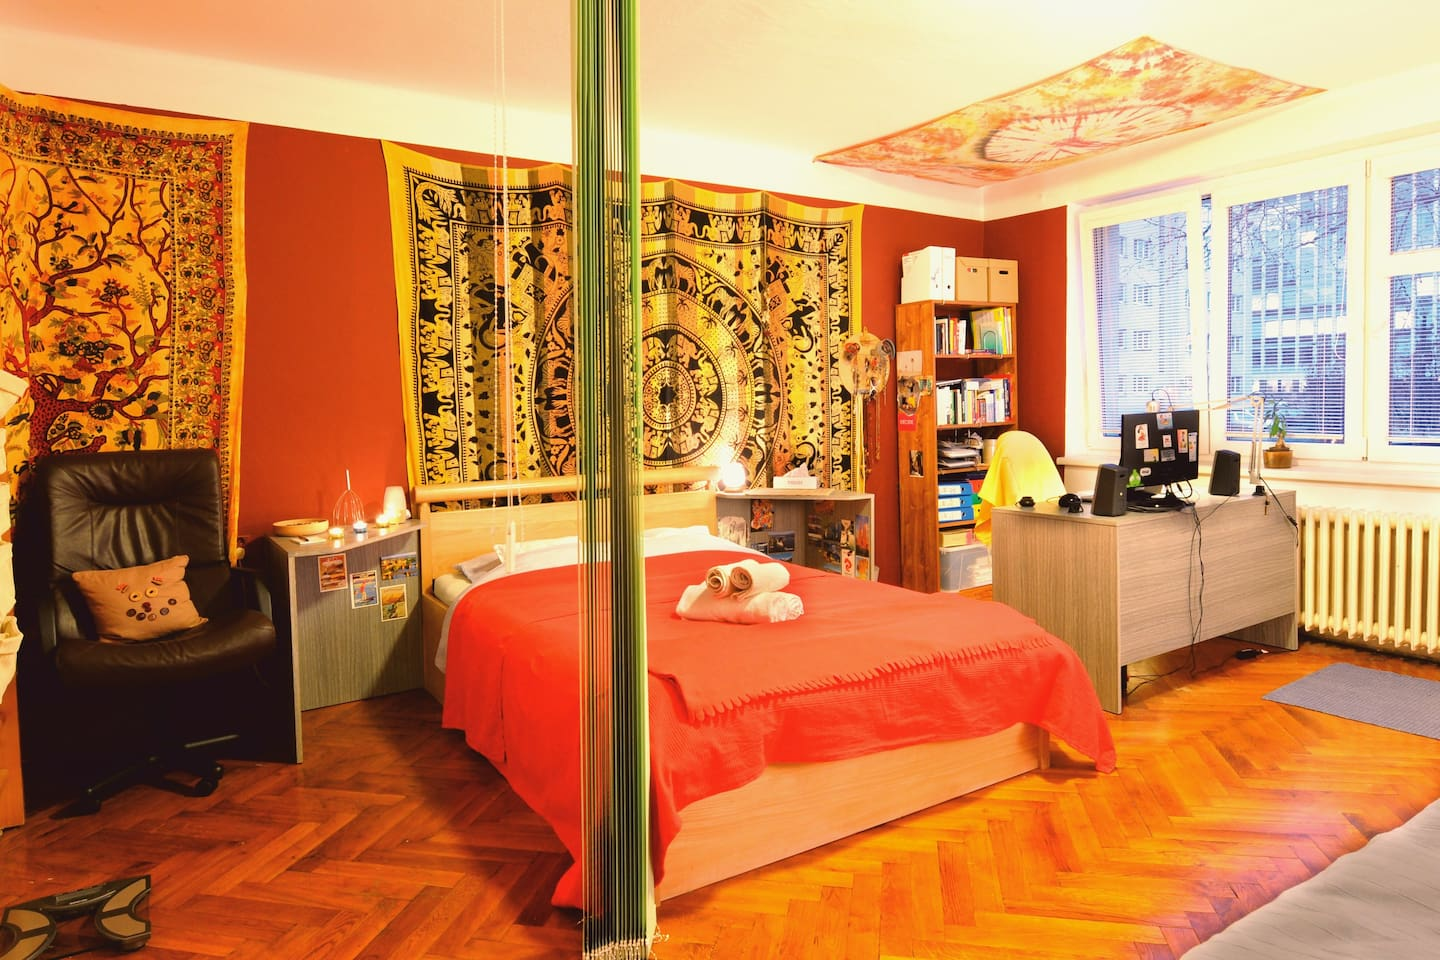 The spacious bedroom with a comfortable doublebed and clean blankets